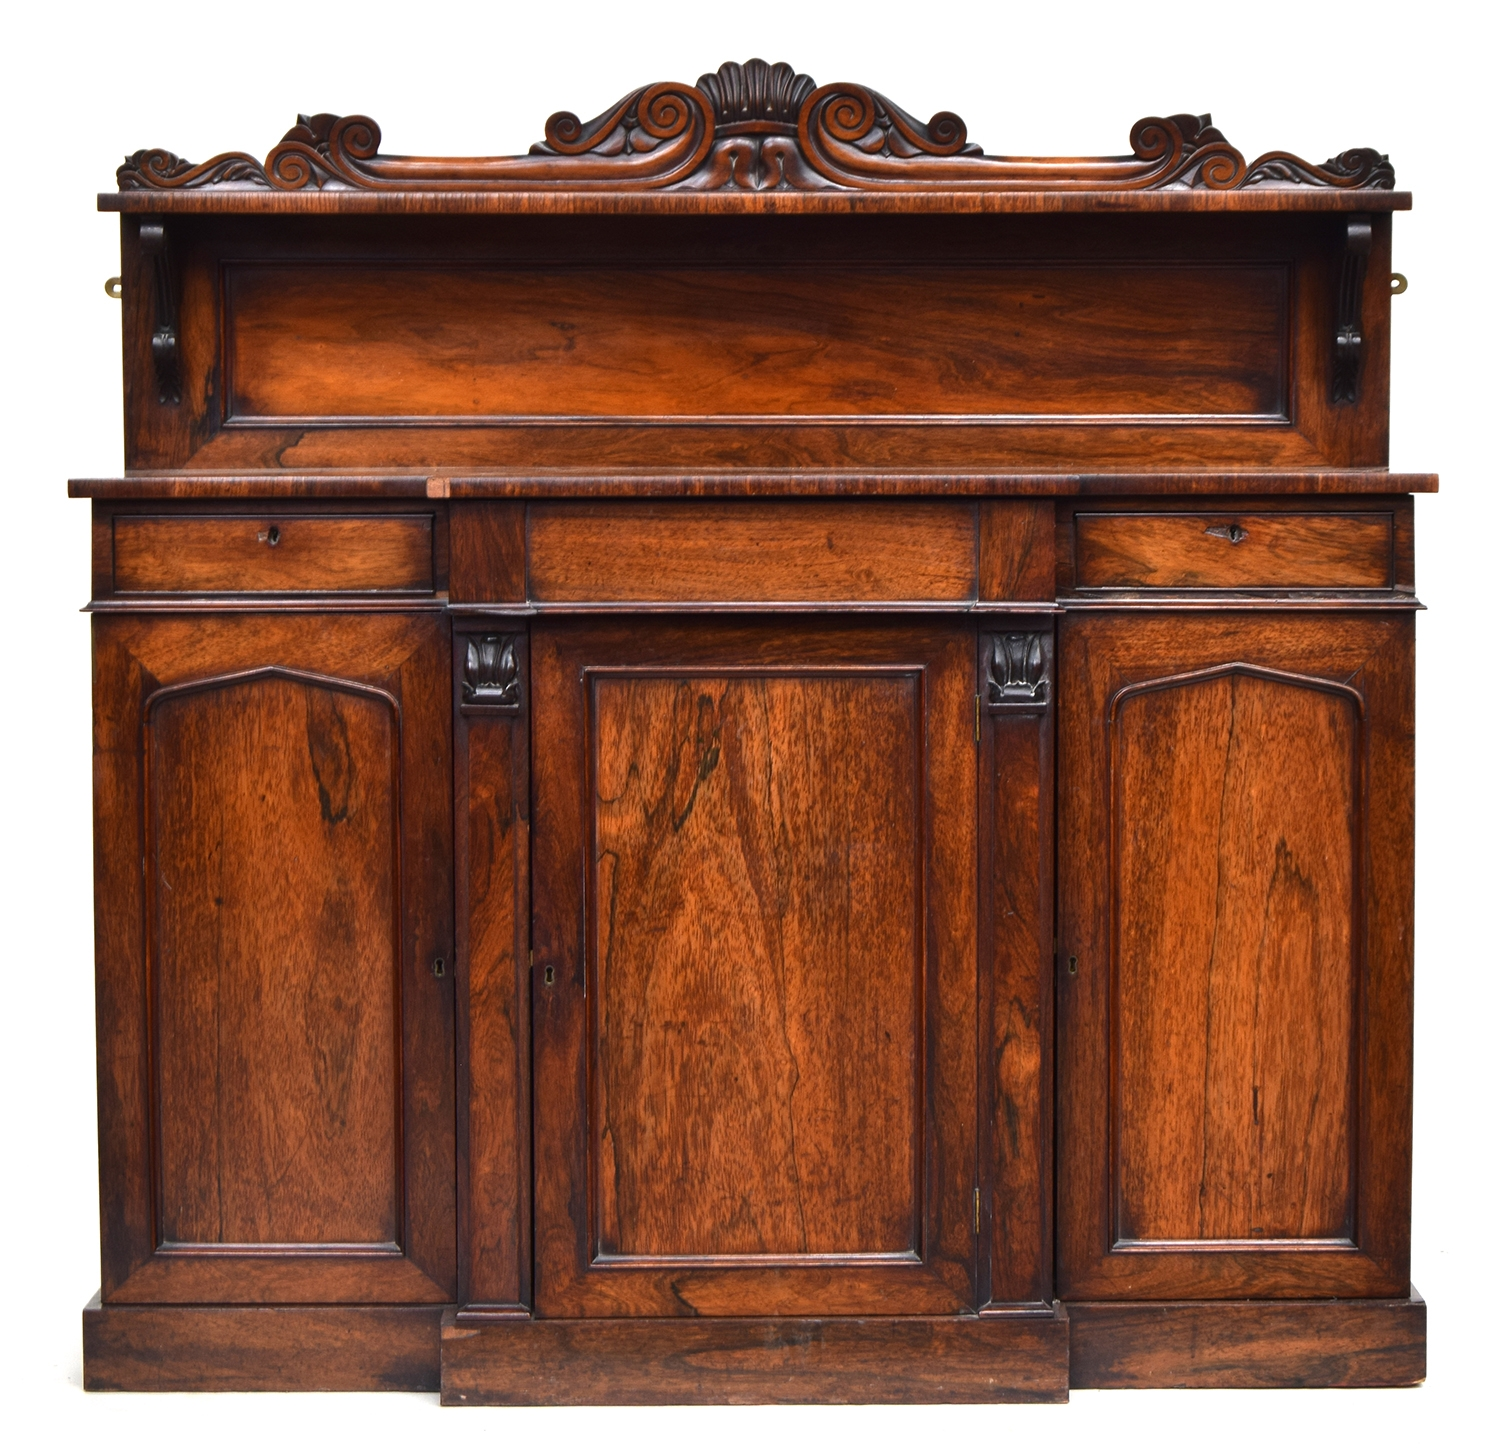 A 19th century break front rosewood chiffonier, carved upstand with single shelf, central fitted